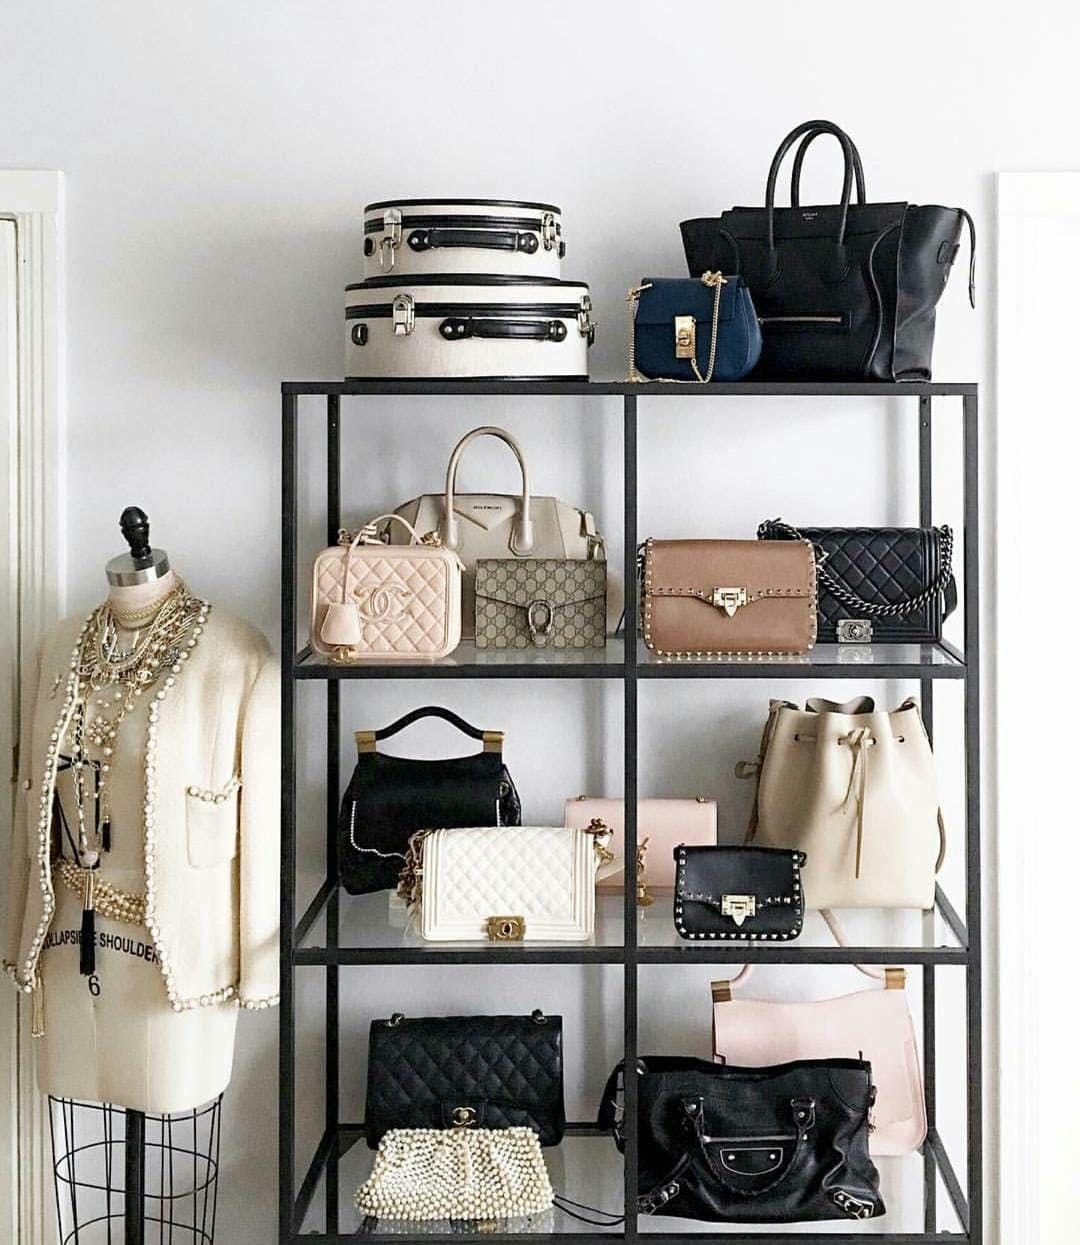 Purse Storage Options To Buy Or DIY